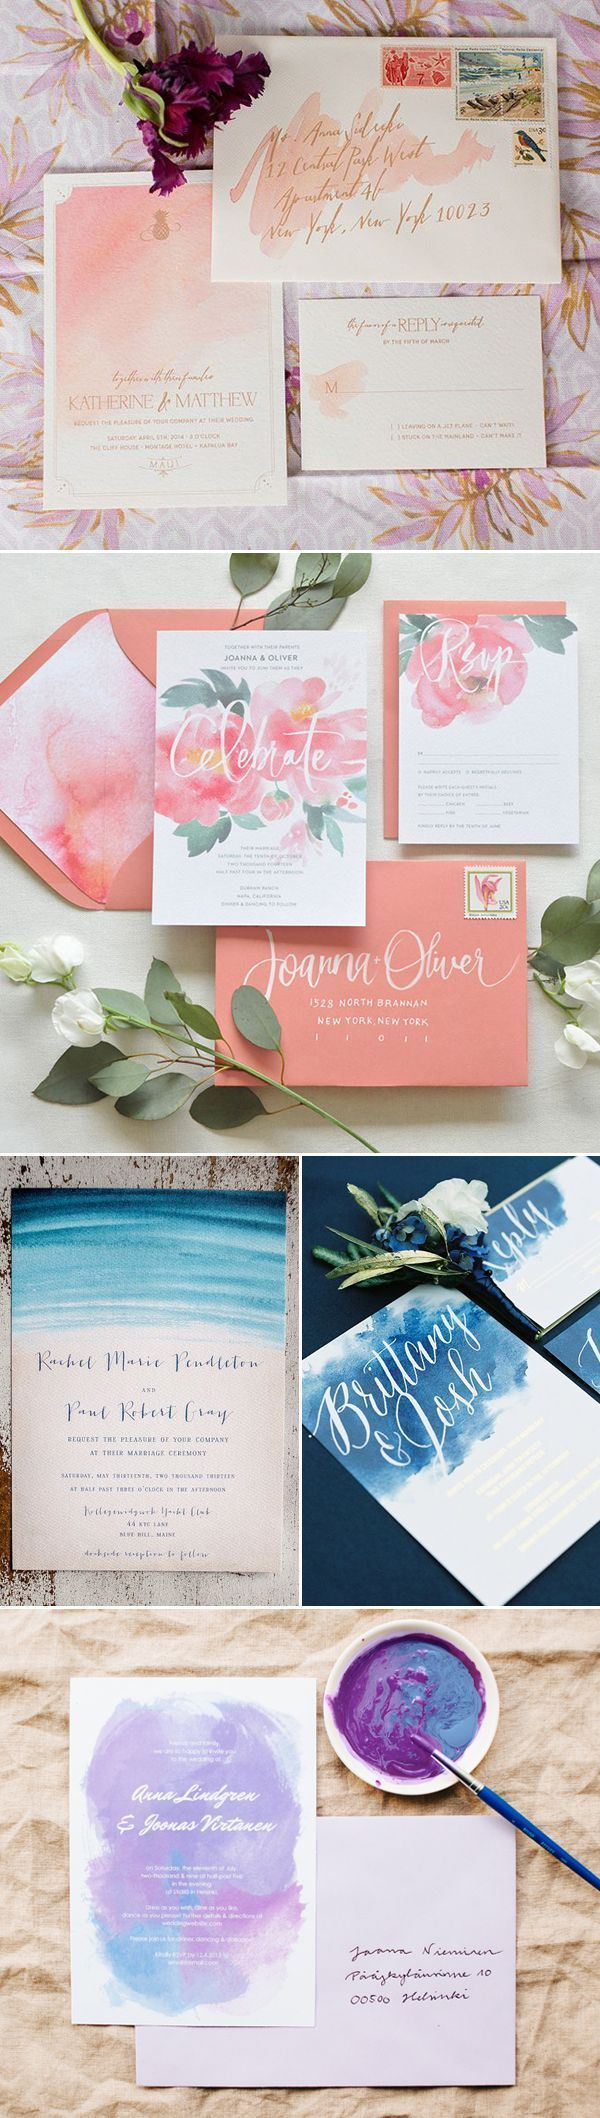 not on the high street winter wedding invitations%0A Your wedding invitation is one of the very first parts of the wedding that  guests actually